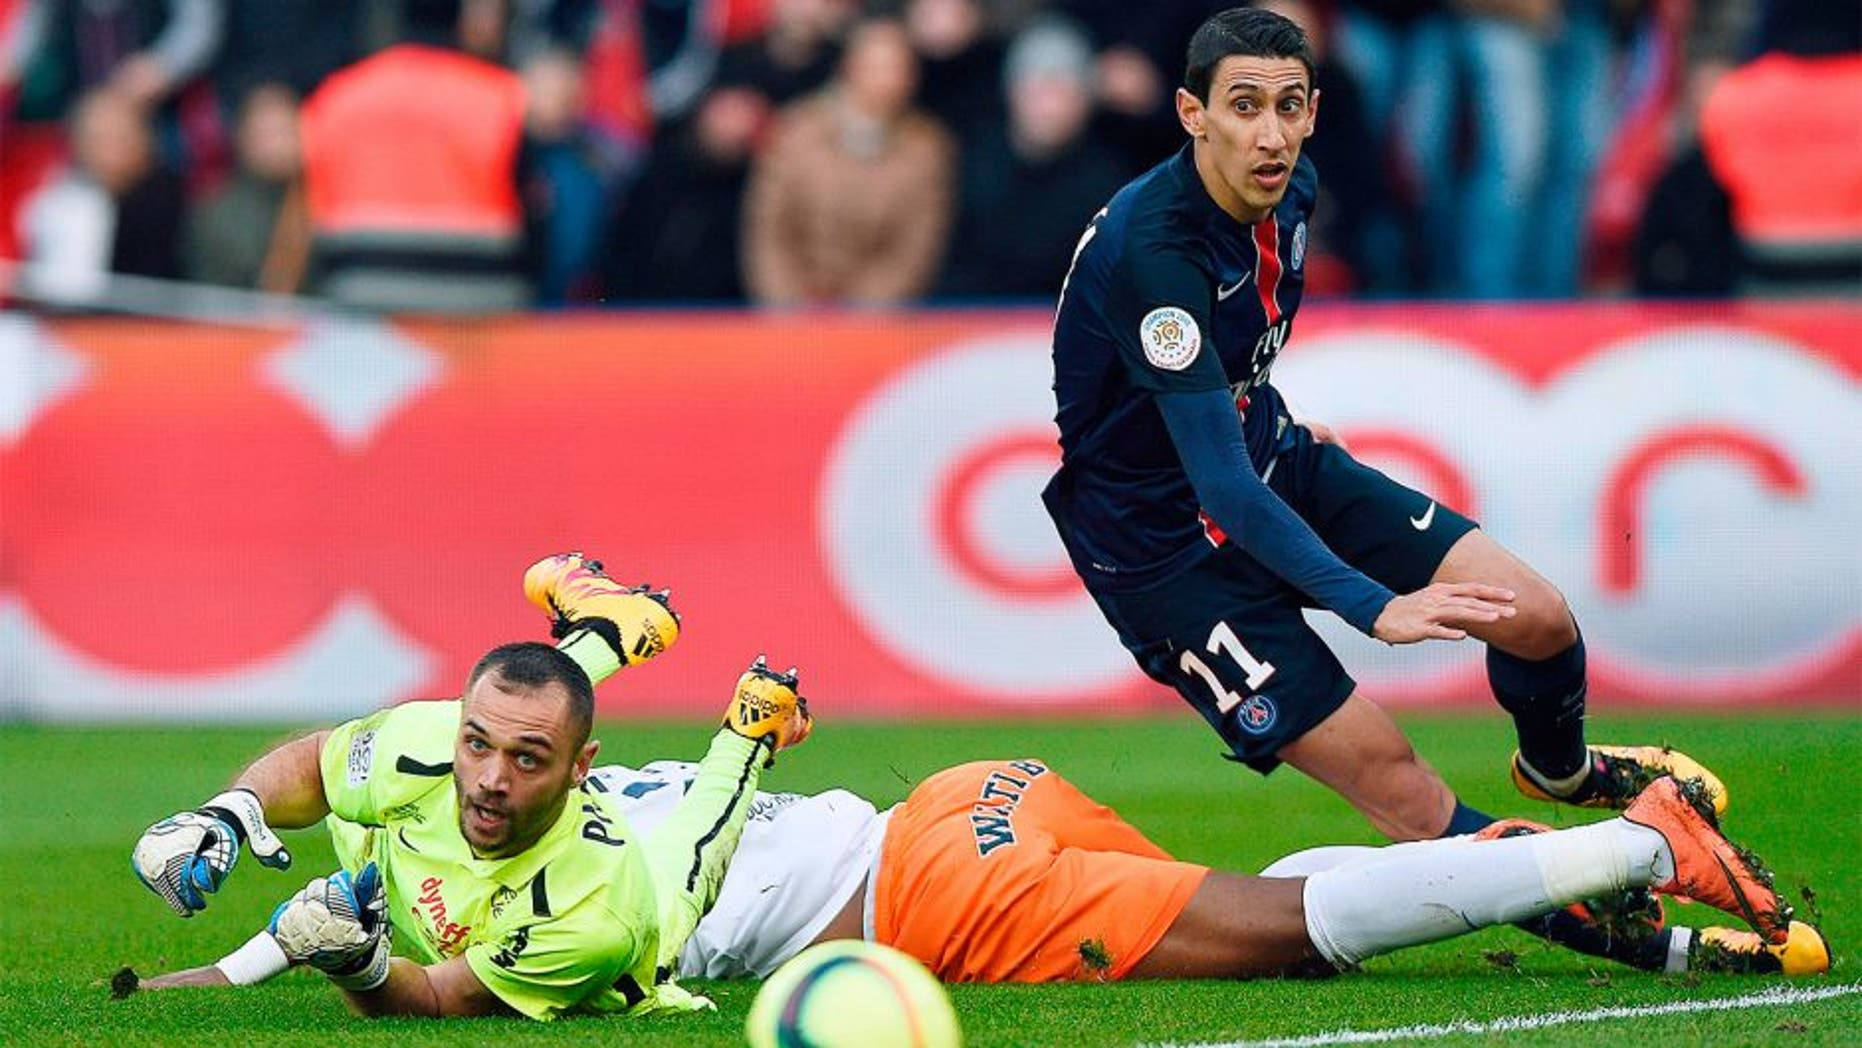 Montpellier's French goalkeeper Laurent Pionnier (L) falls next to Paris Saint-Germain's Argentinian forward Angel Di Maria (R) during the French L1 football match between Paris Saint-Germain (PSG) and Montpellier (MHSC) on March 5, 2016, at the Parc des Princes stadium in Paris. AFP PHOTO / FRANCK FIFE / AFP / FRANCK FIFE (Photo credit should read FRANCK FIFE/AFP/Getty Images)